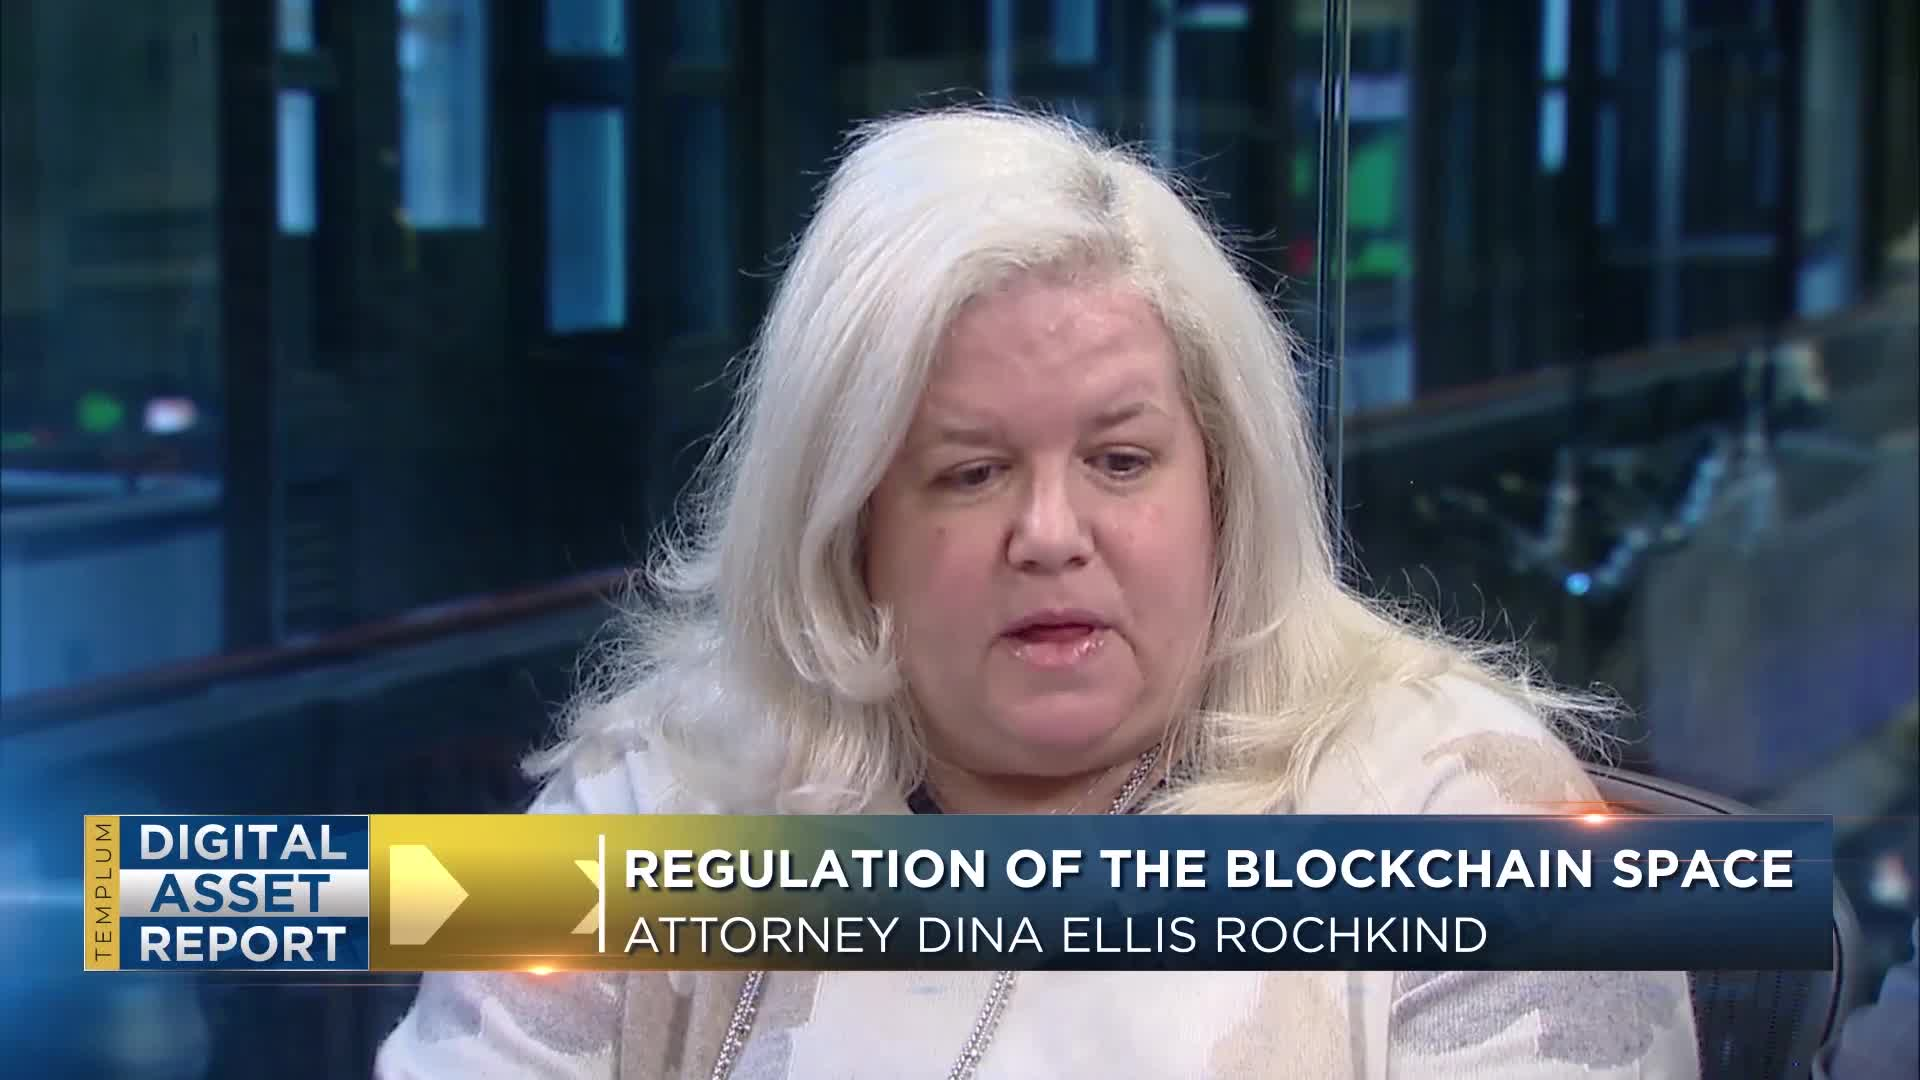 Episode-3_ATTORNEY_DINA_ELLIS__RCHKIND_Discusses_Blockchain_SEC&Congress.mp4